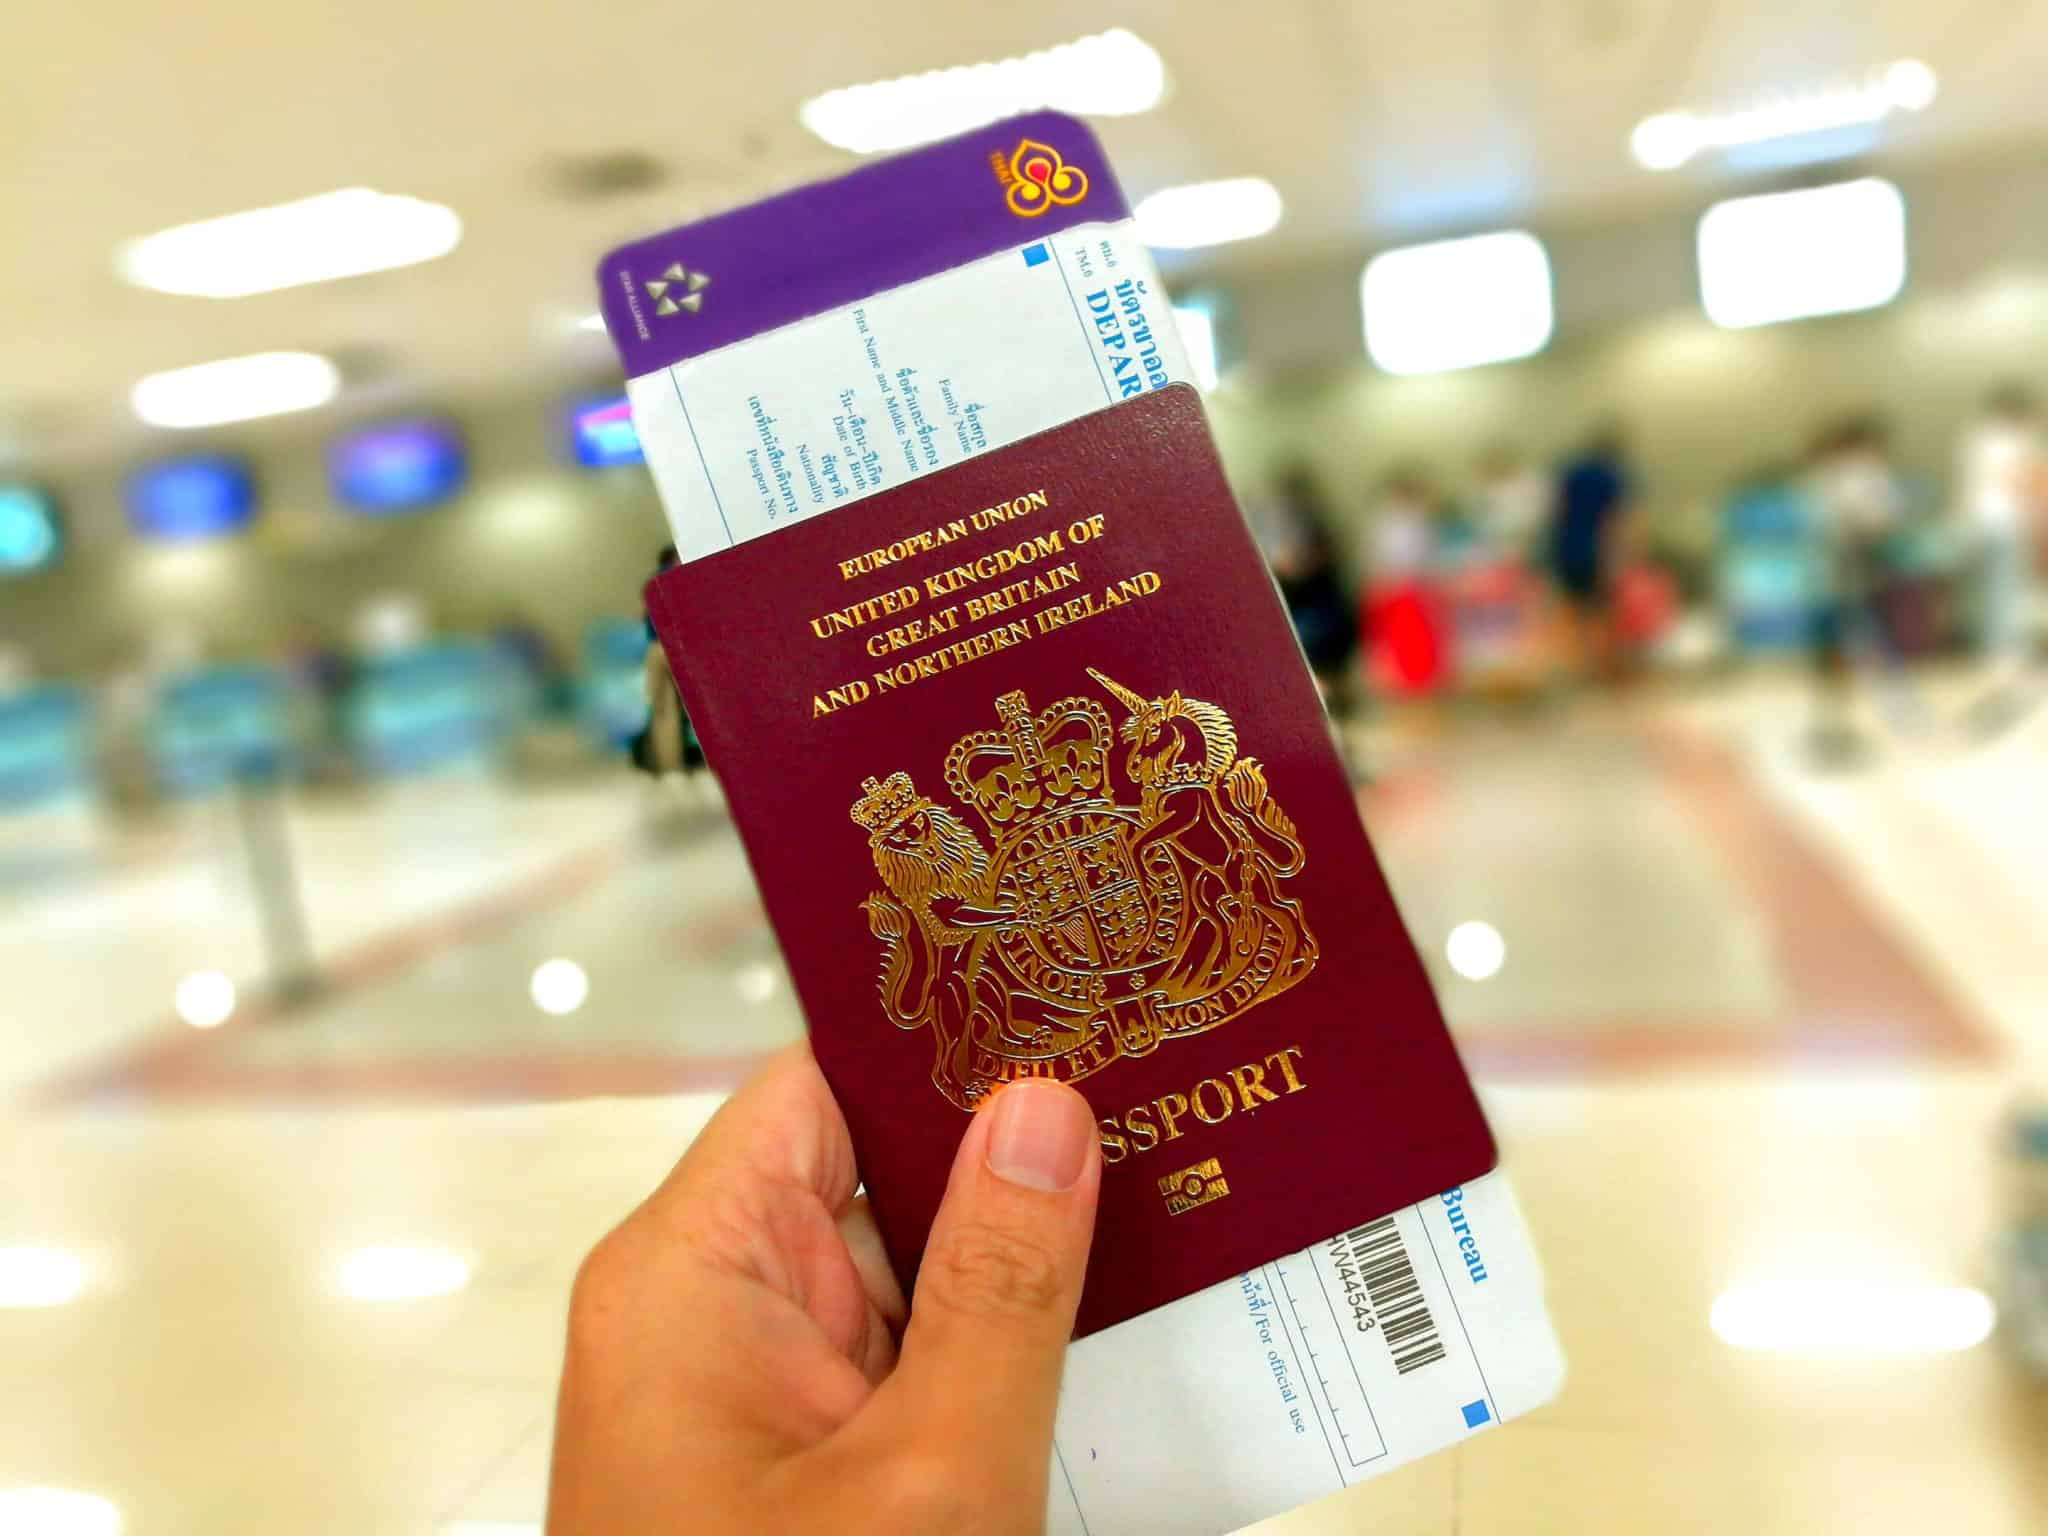 A copy of a british passport with a Thai boarding pass